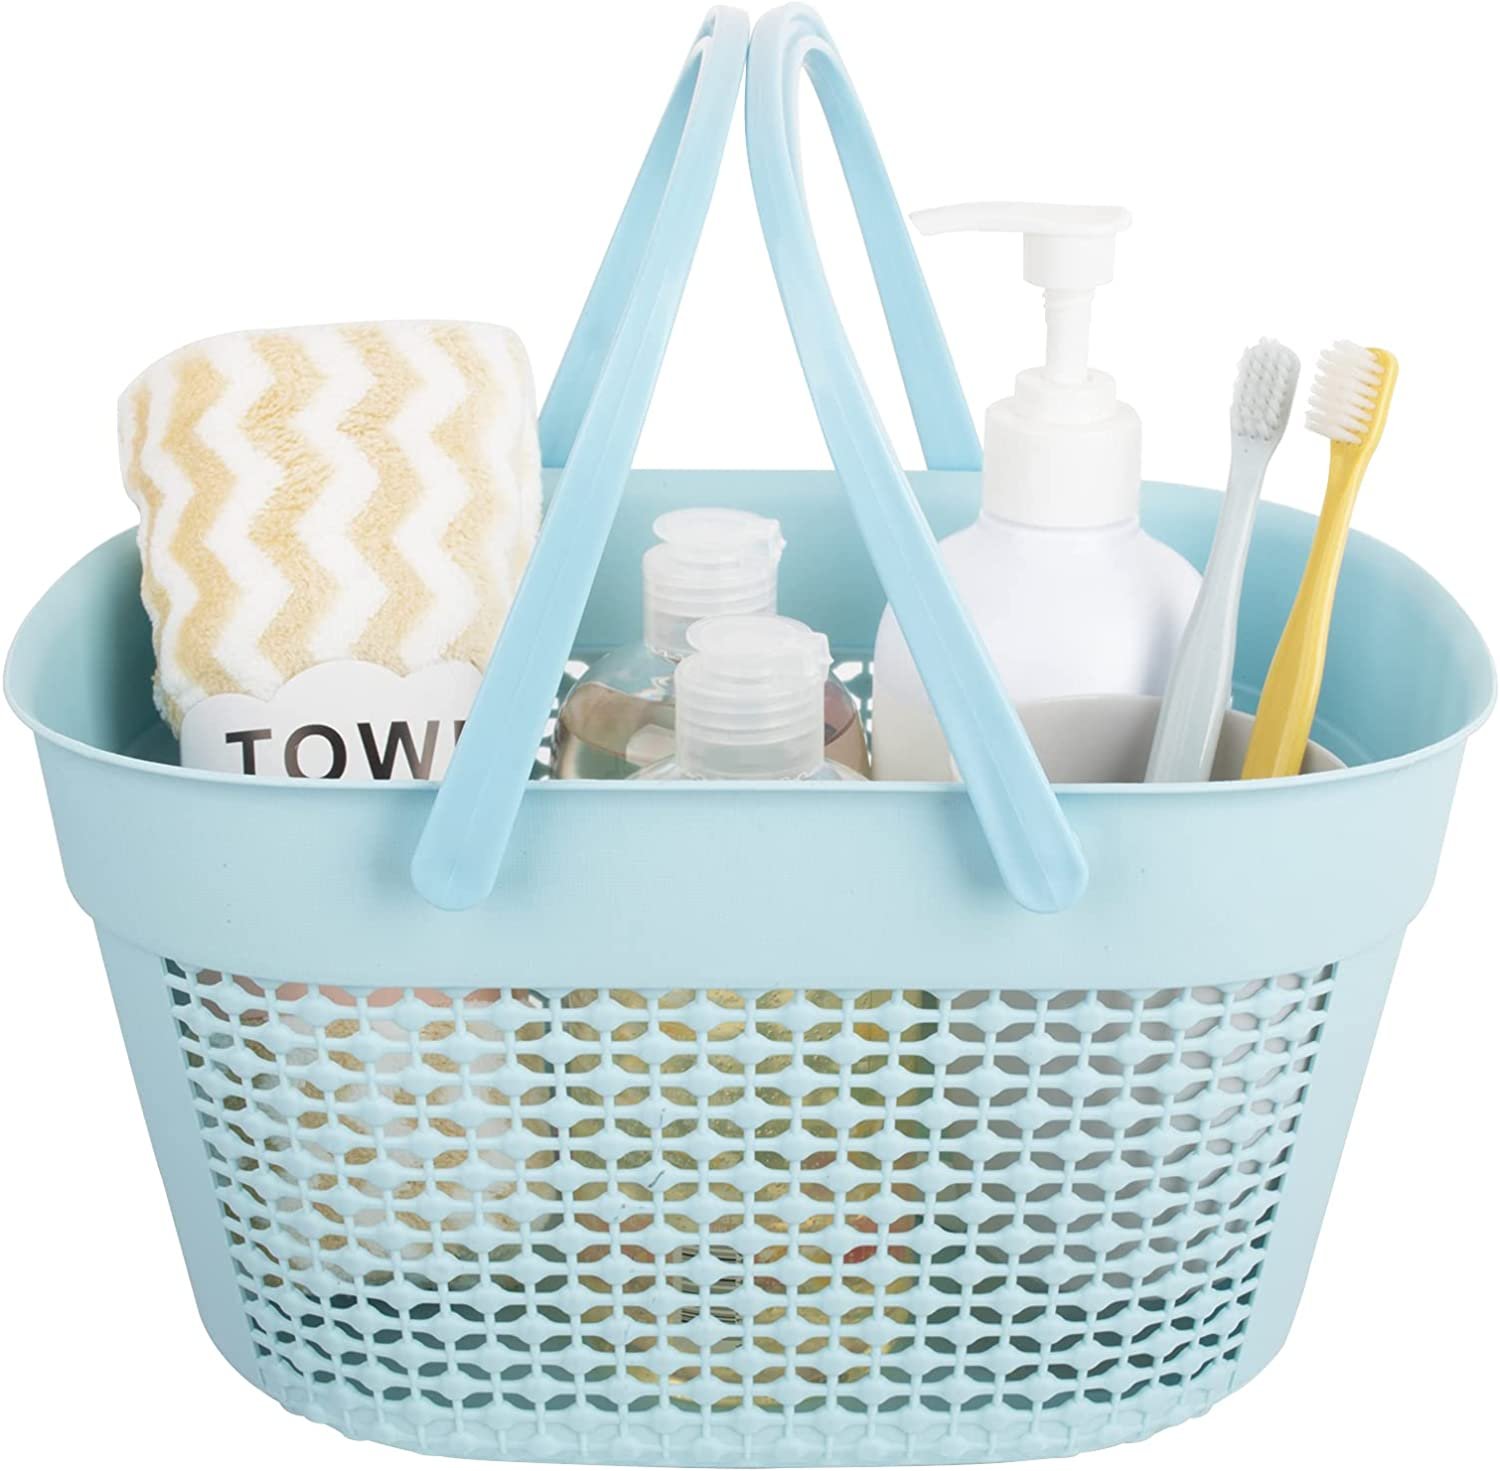 rejomiik Shower Caddy Basket Portable Handle with ! Super beauty product restock quality top! Tote Plastic Manufacturer OFFicial shop